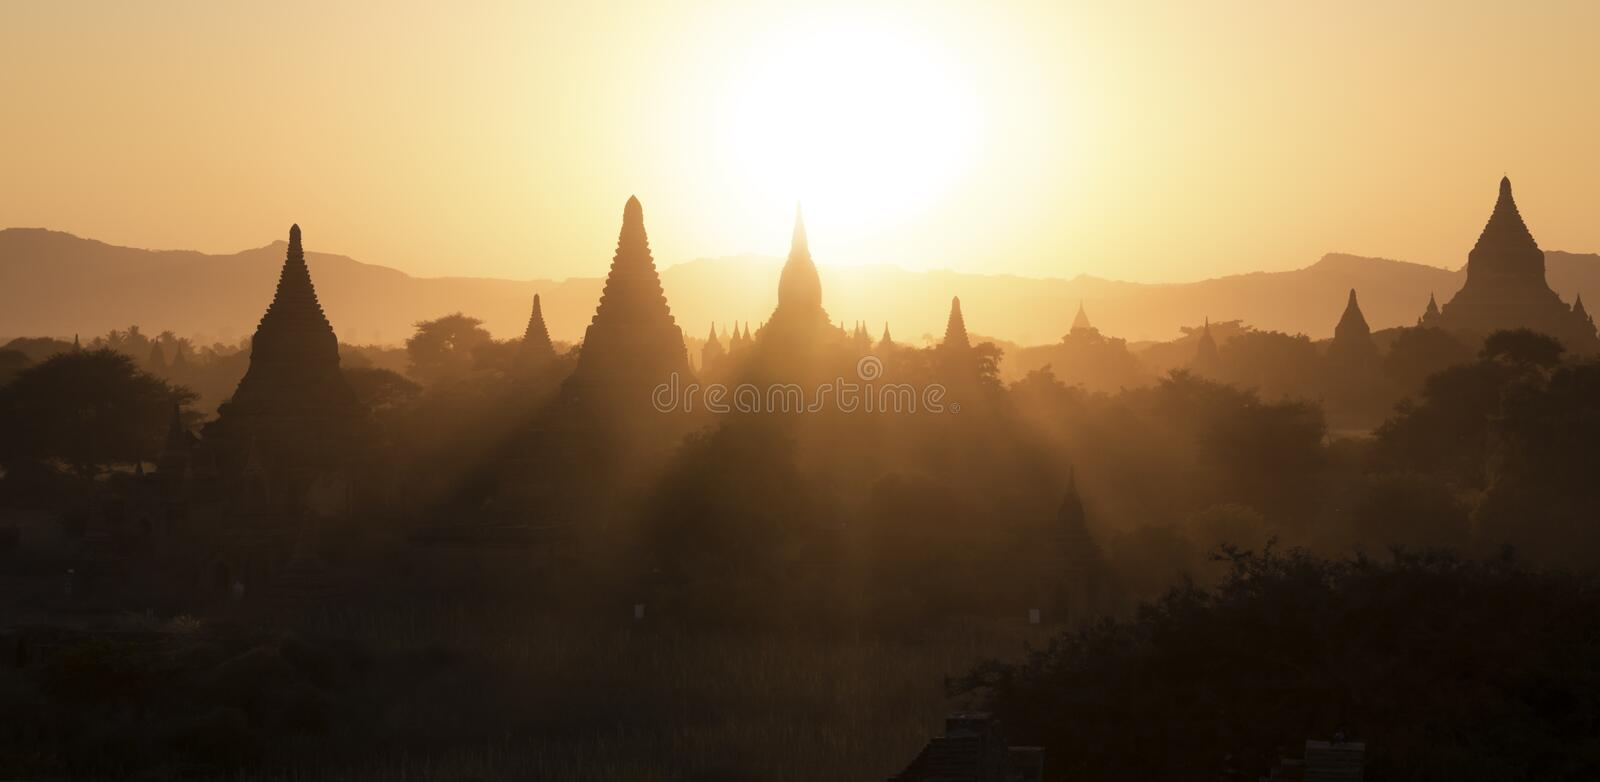 Sunset at the Bagan landscape. Silhouettes of the Bagan stupas during sunset, Myanmar stock image